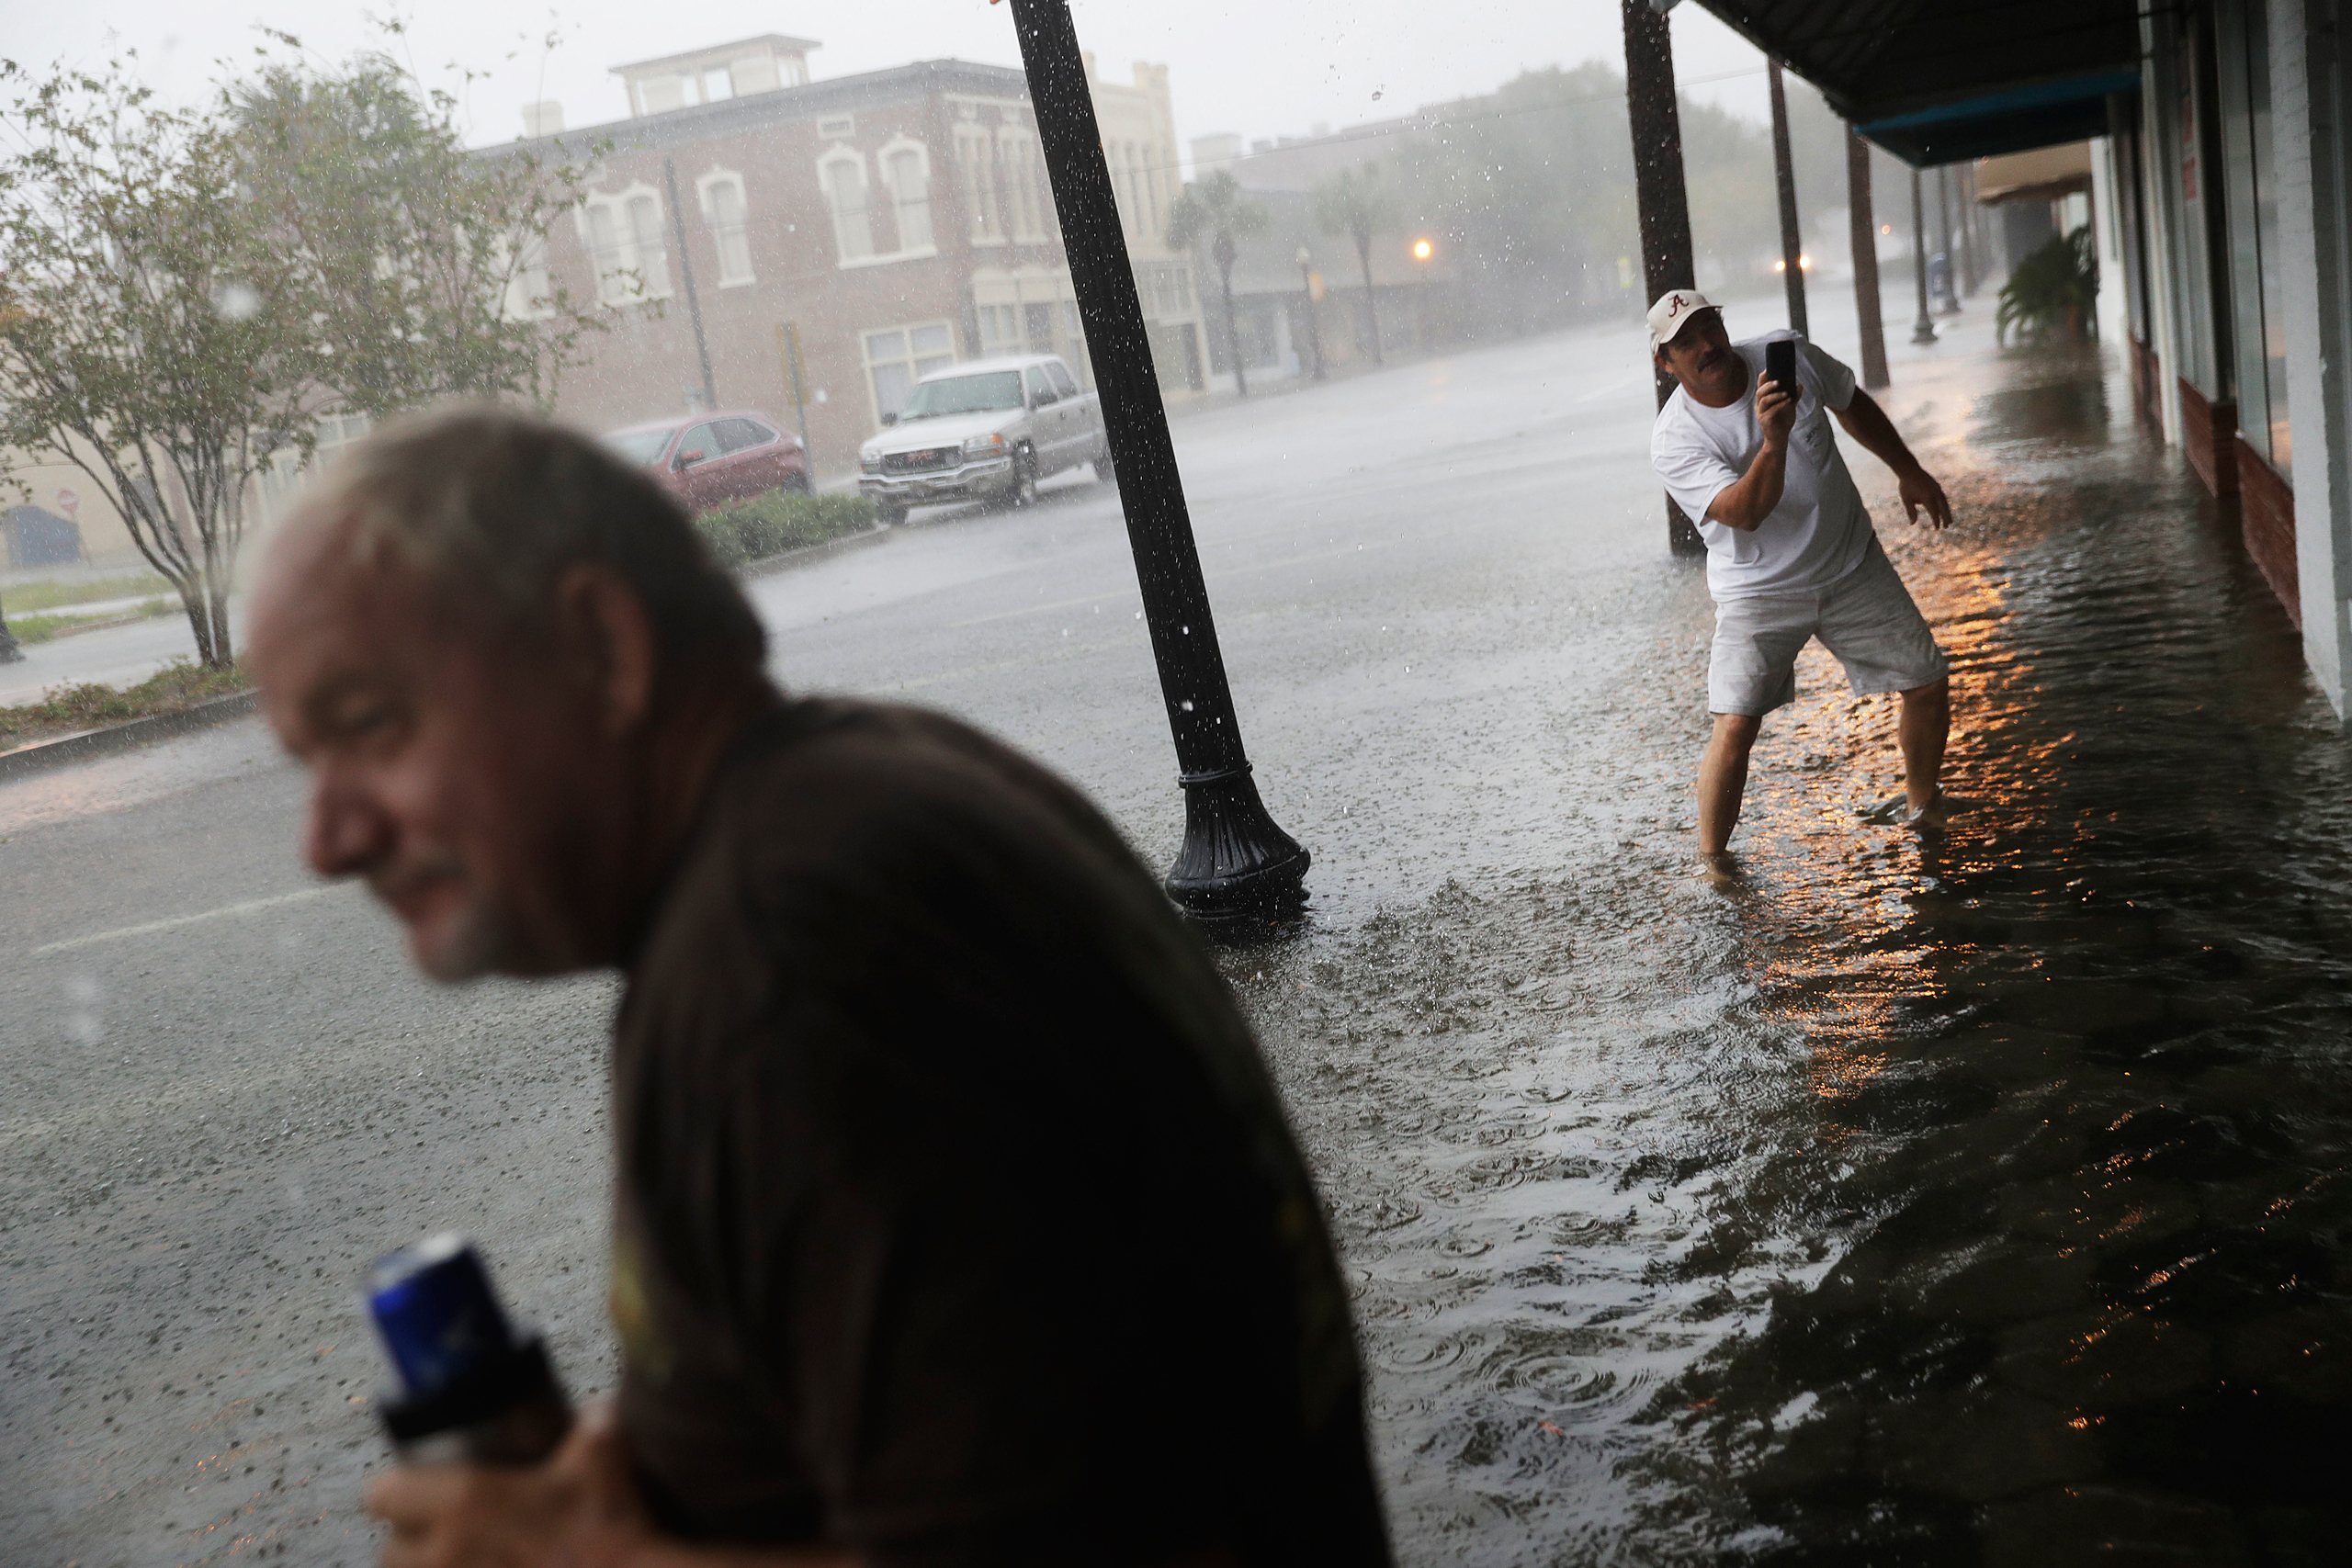 Keith Paseur, right, and Pat Barlow survey a flooded street from Hurricane Matthew as they check on a neighbor riding out the storm in their store in downtown Brunswick, Ga., on Oct. 7, 2016.